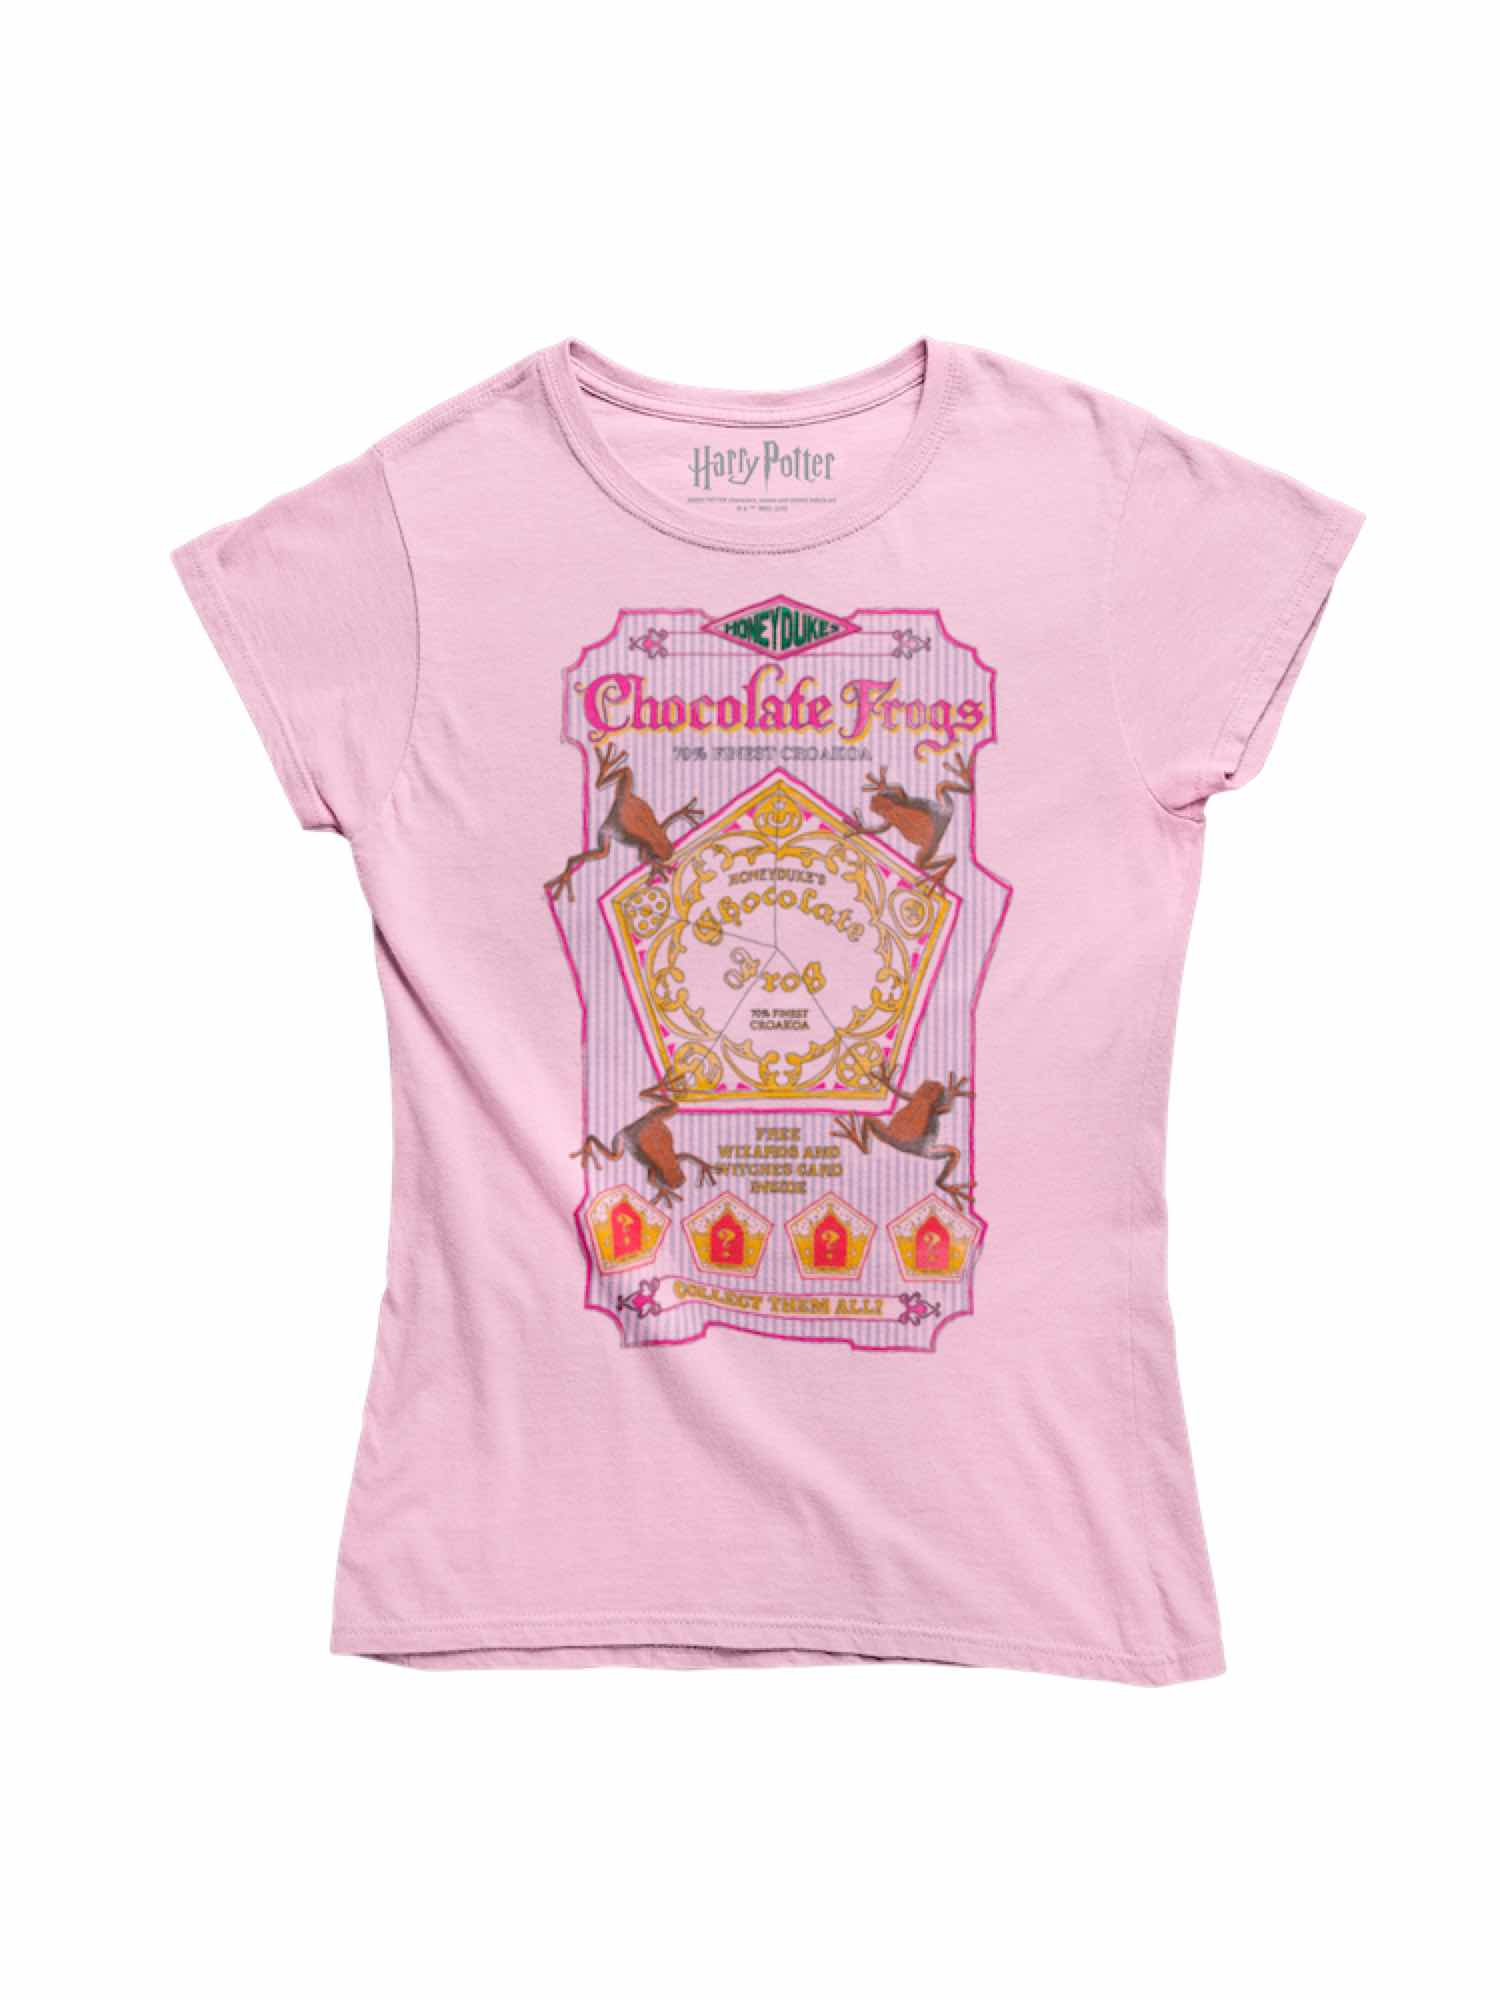 CAMISETA HARRY POTTER CHOCOLATE FROGS T-S